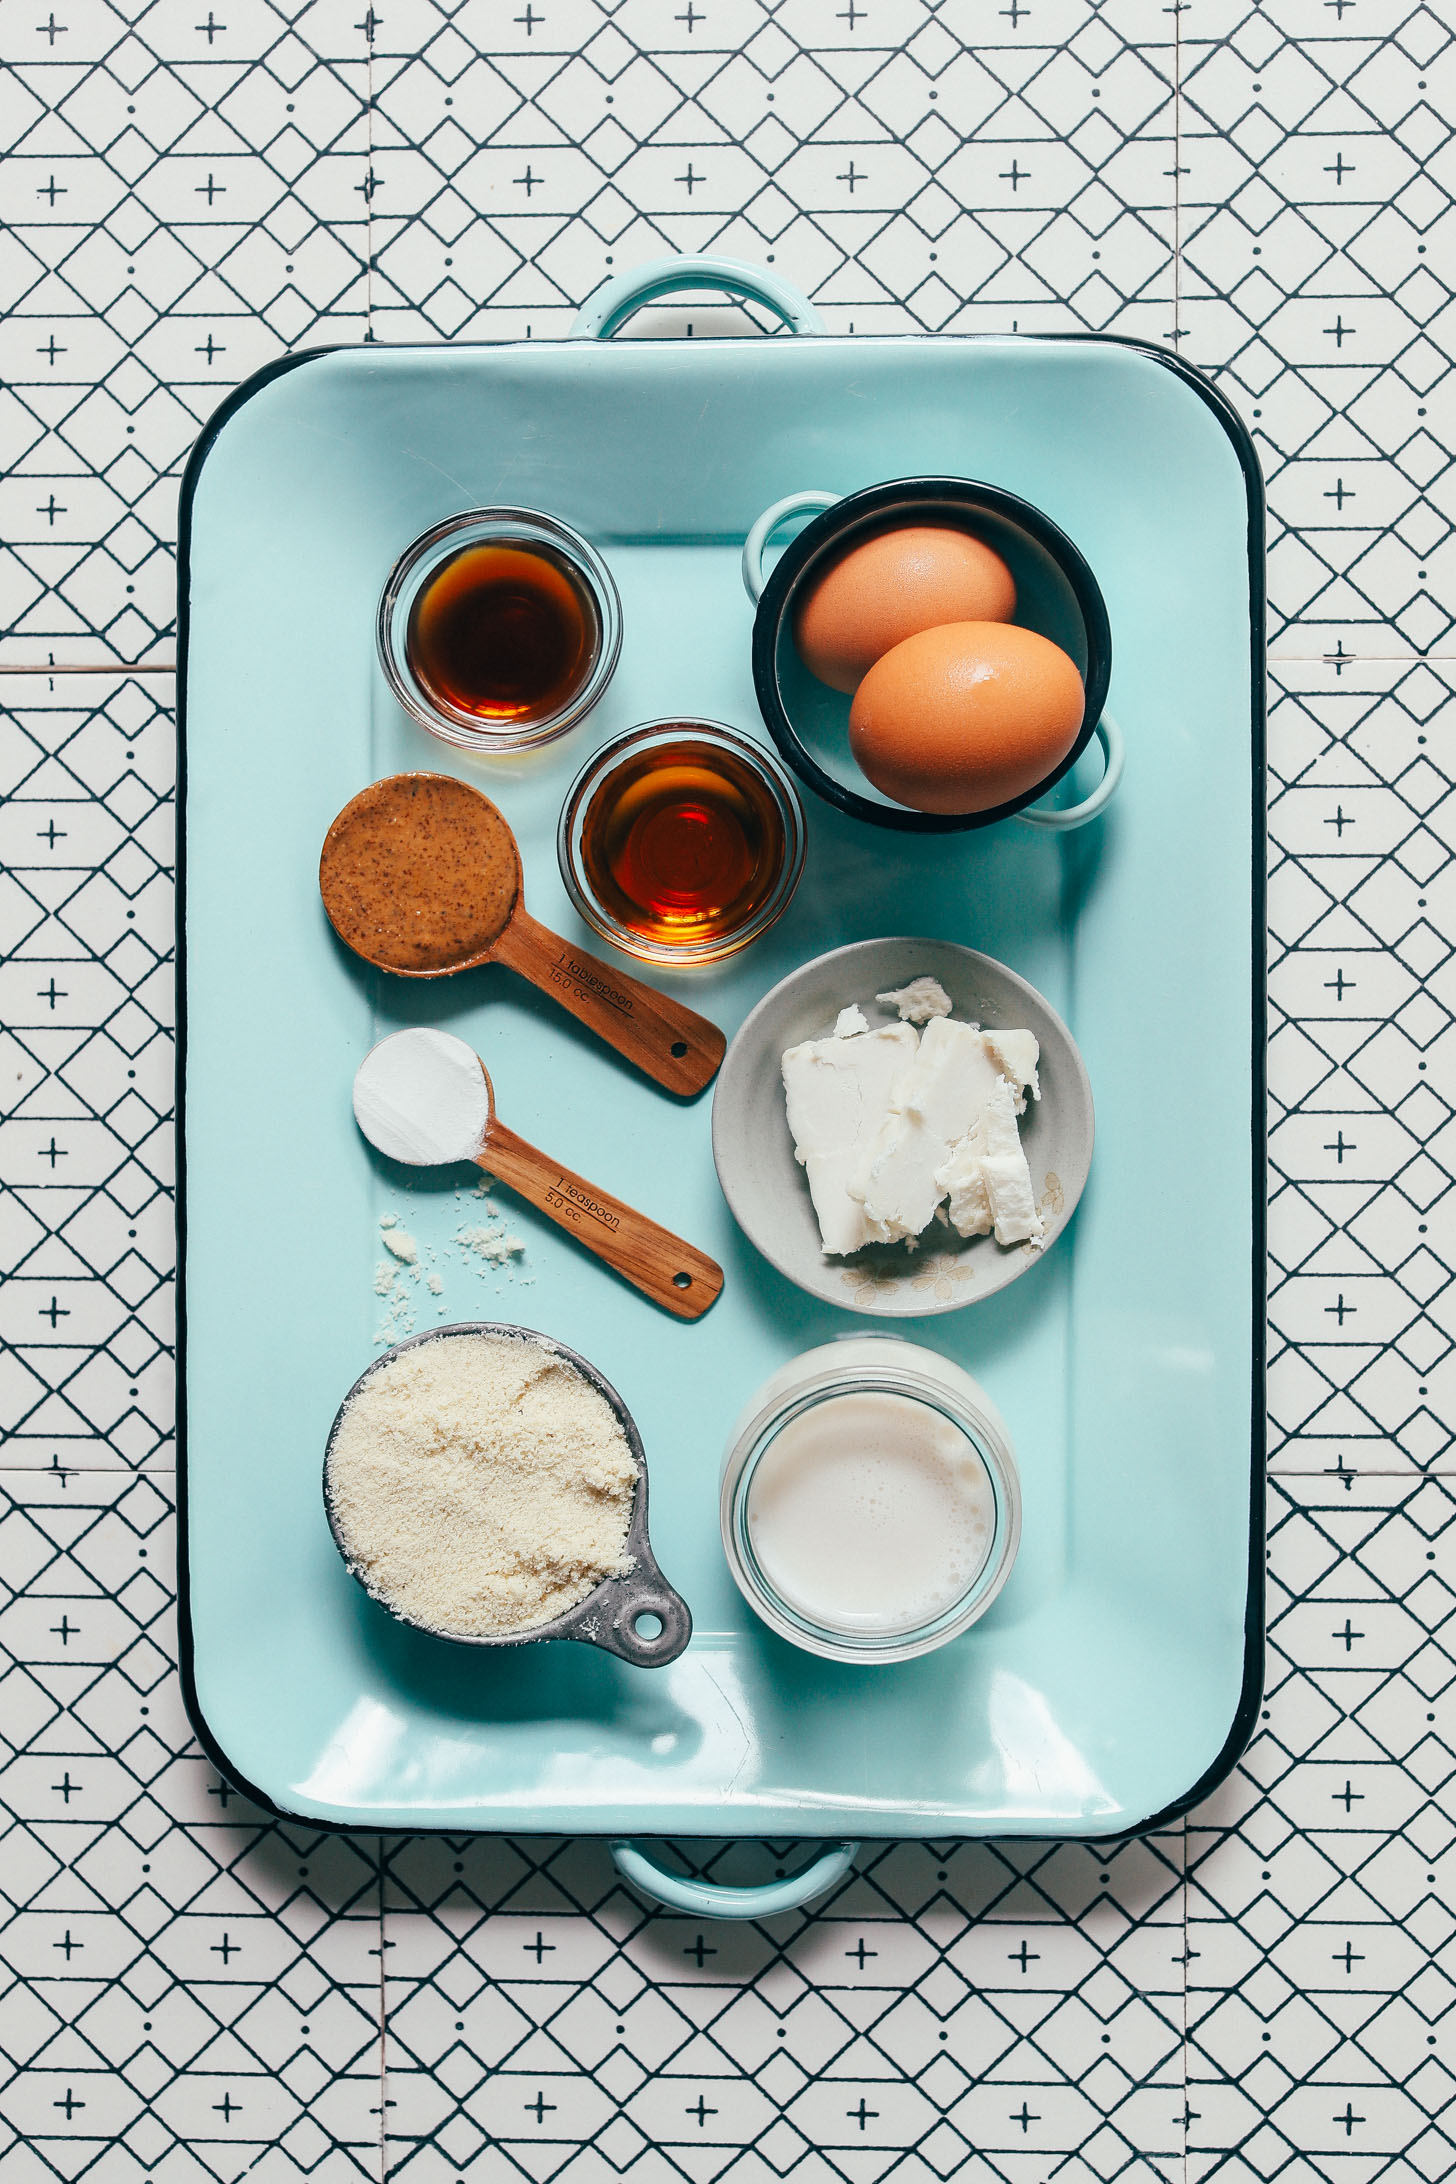 Tray of ingredients for making our low sugar Grain-Free Pancake recipe